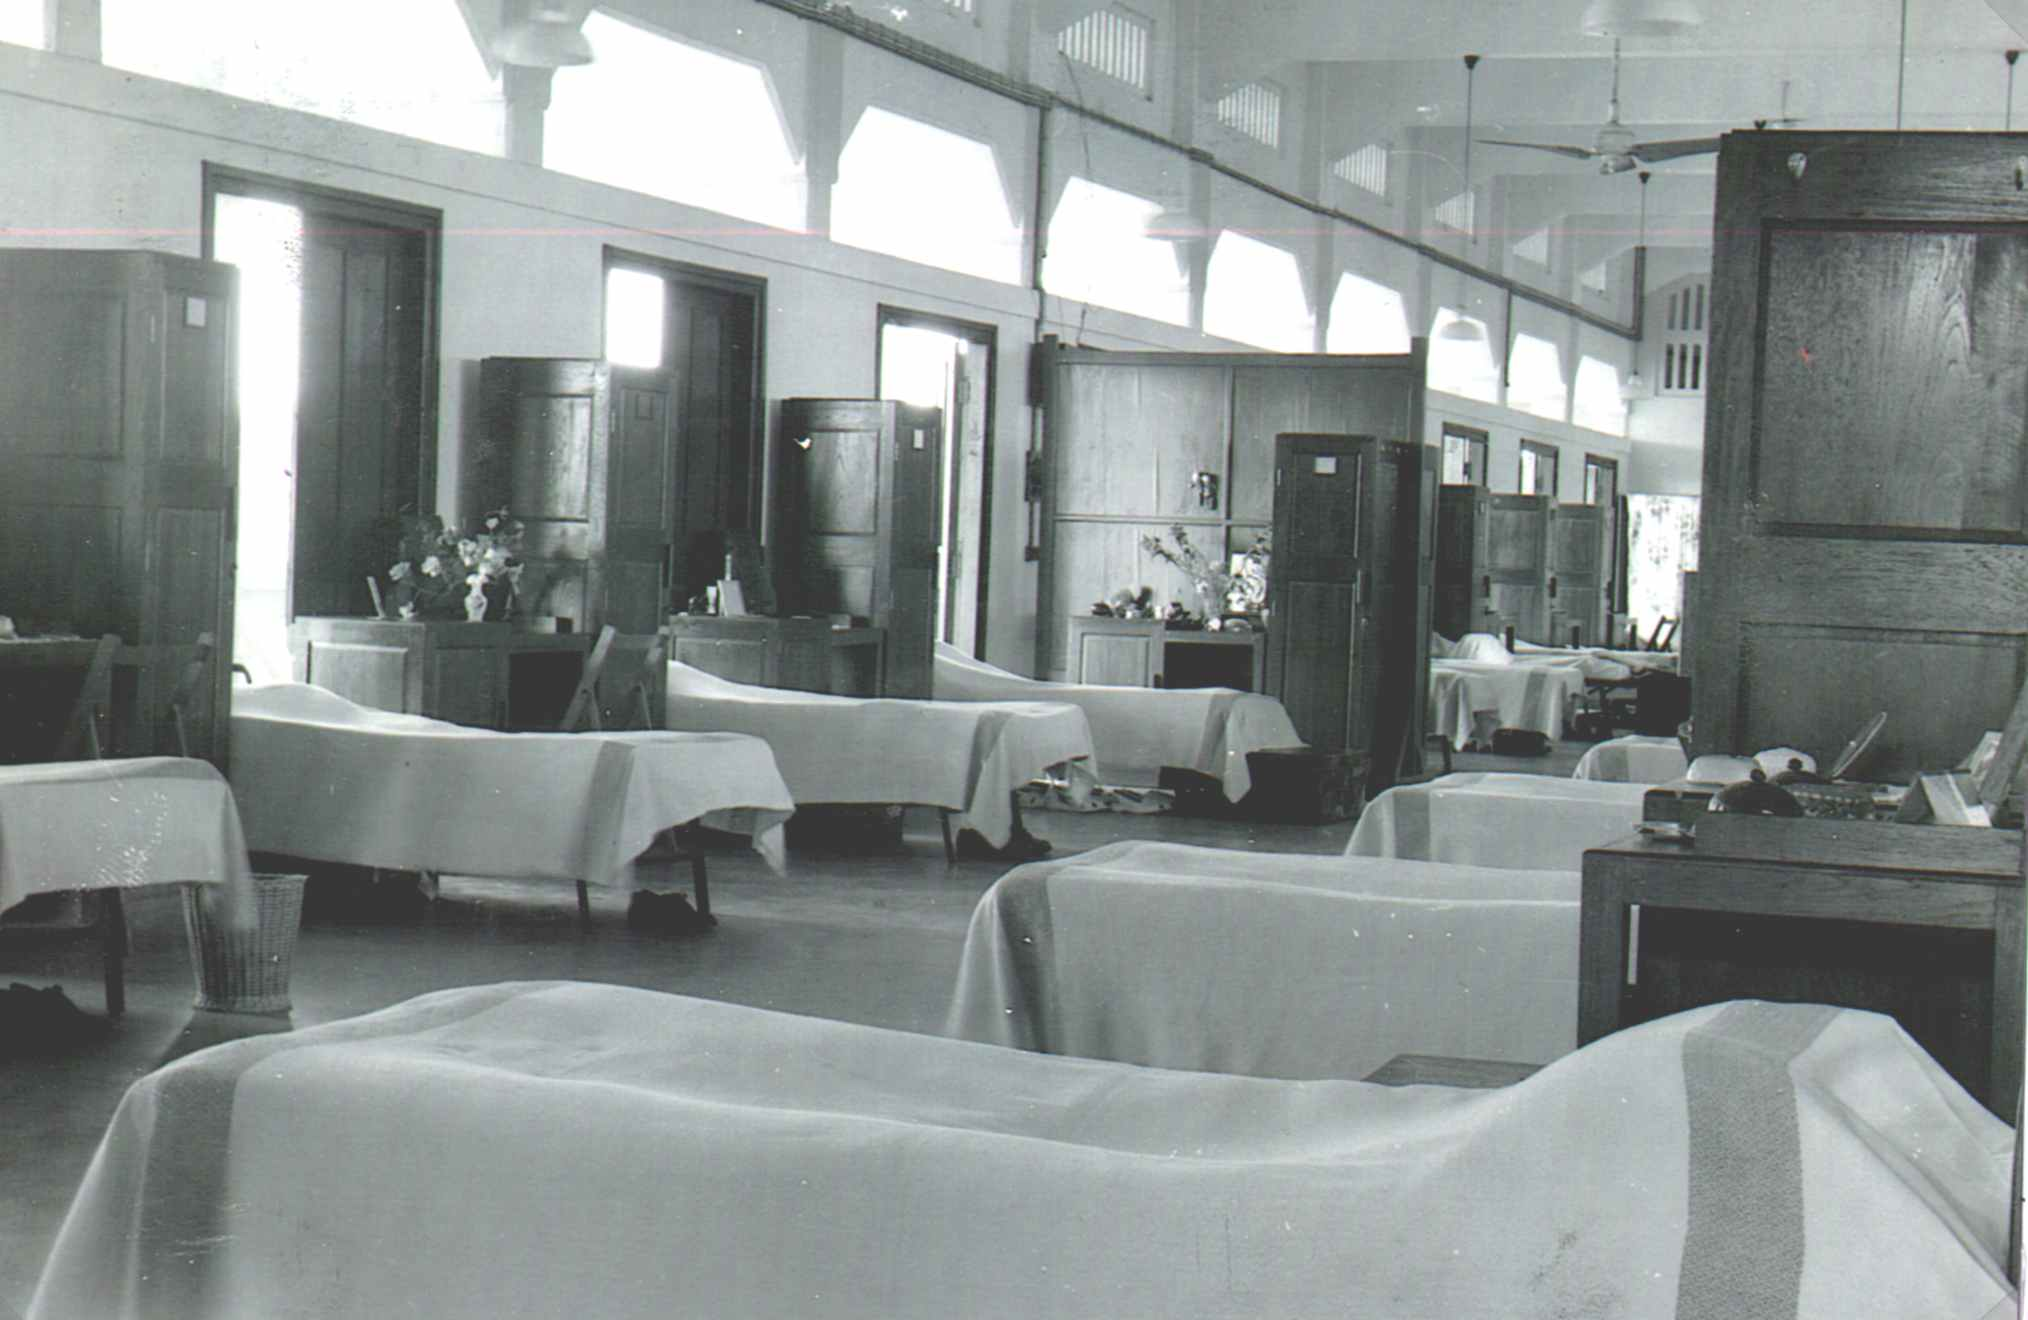 Top Floor Block 117, (WRAF Block) Ready for Inspection, 1952